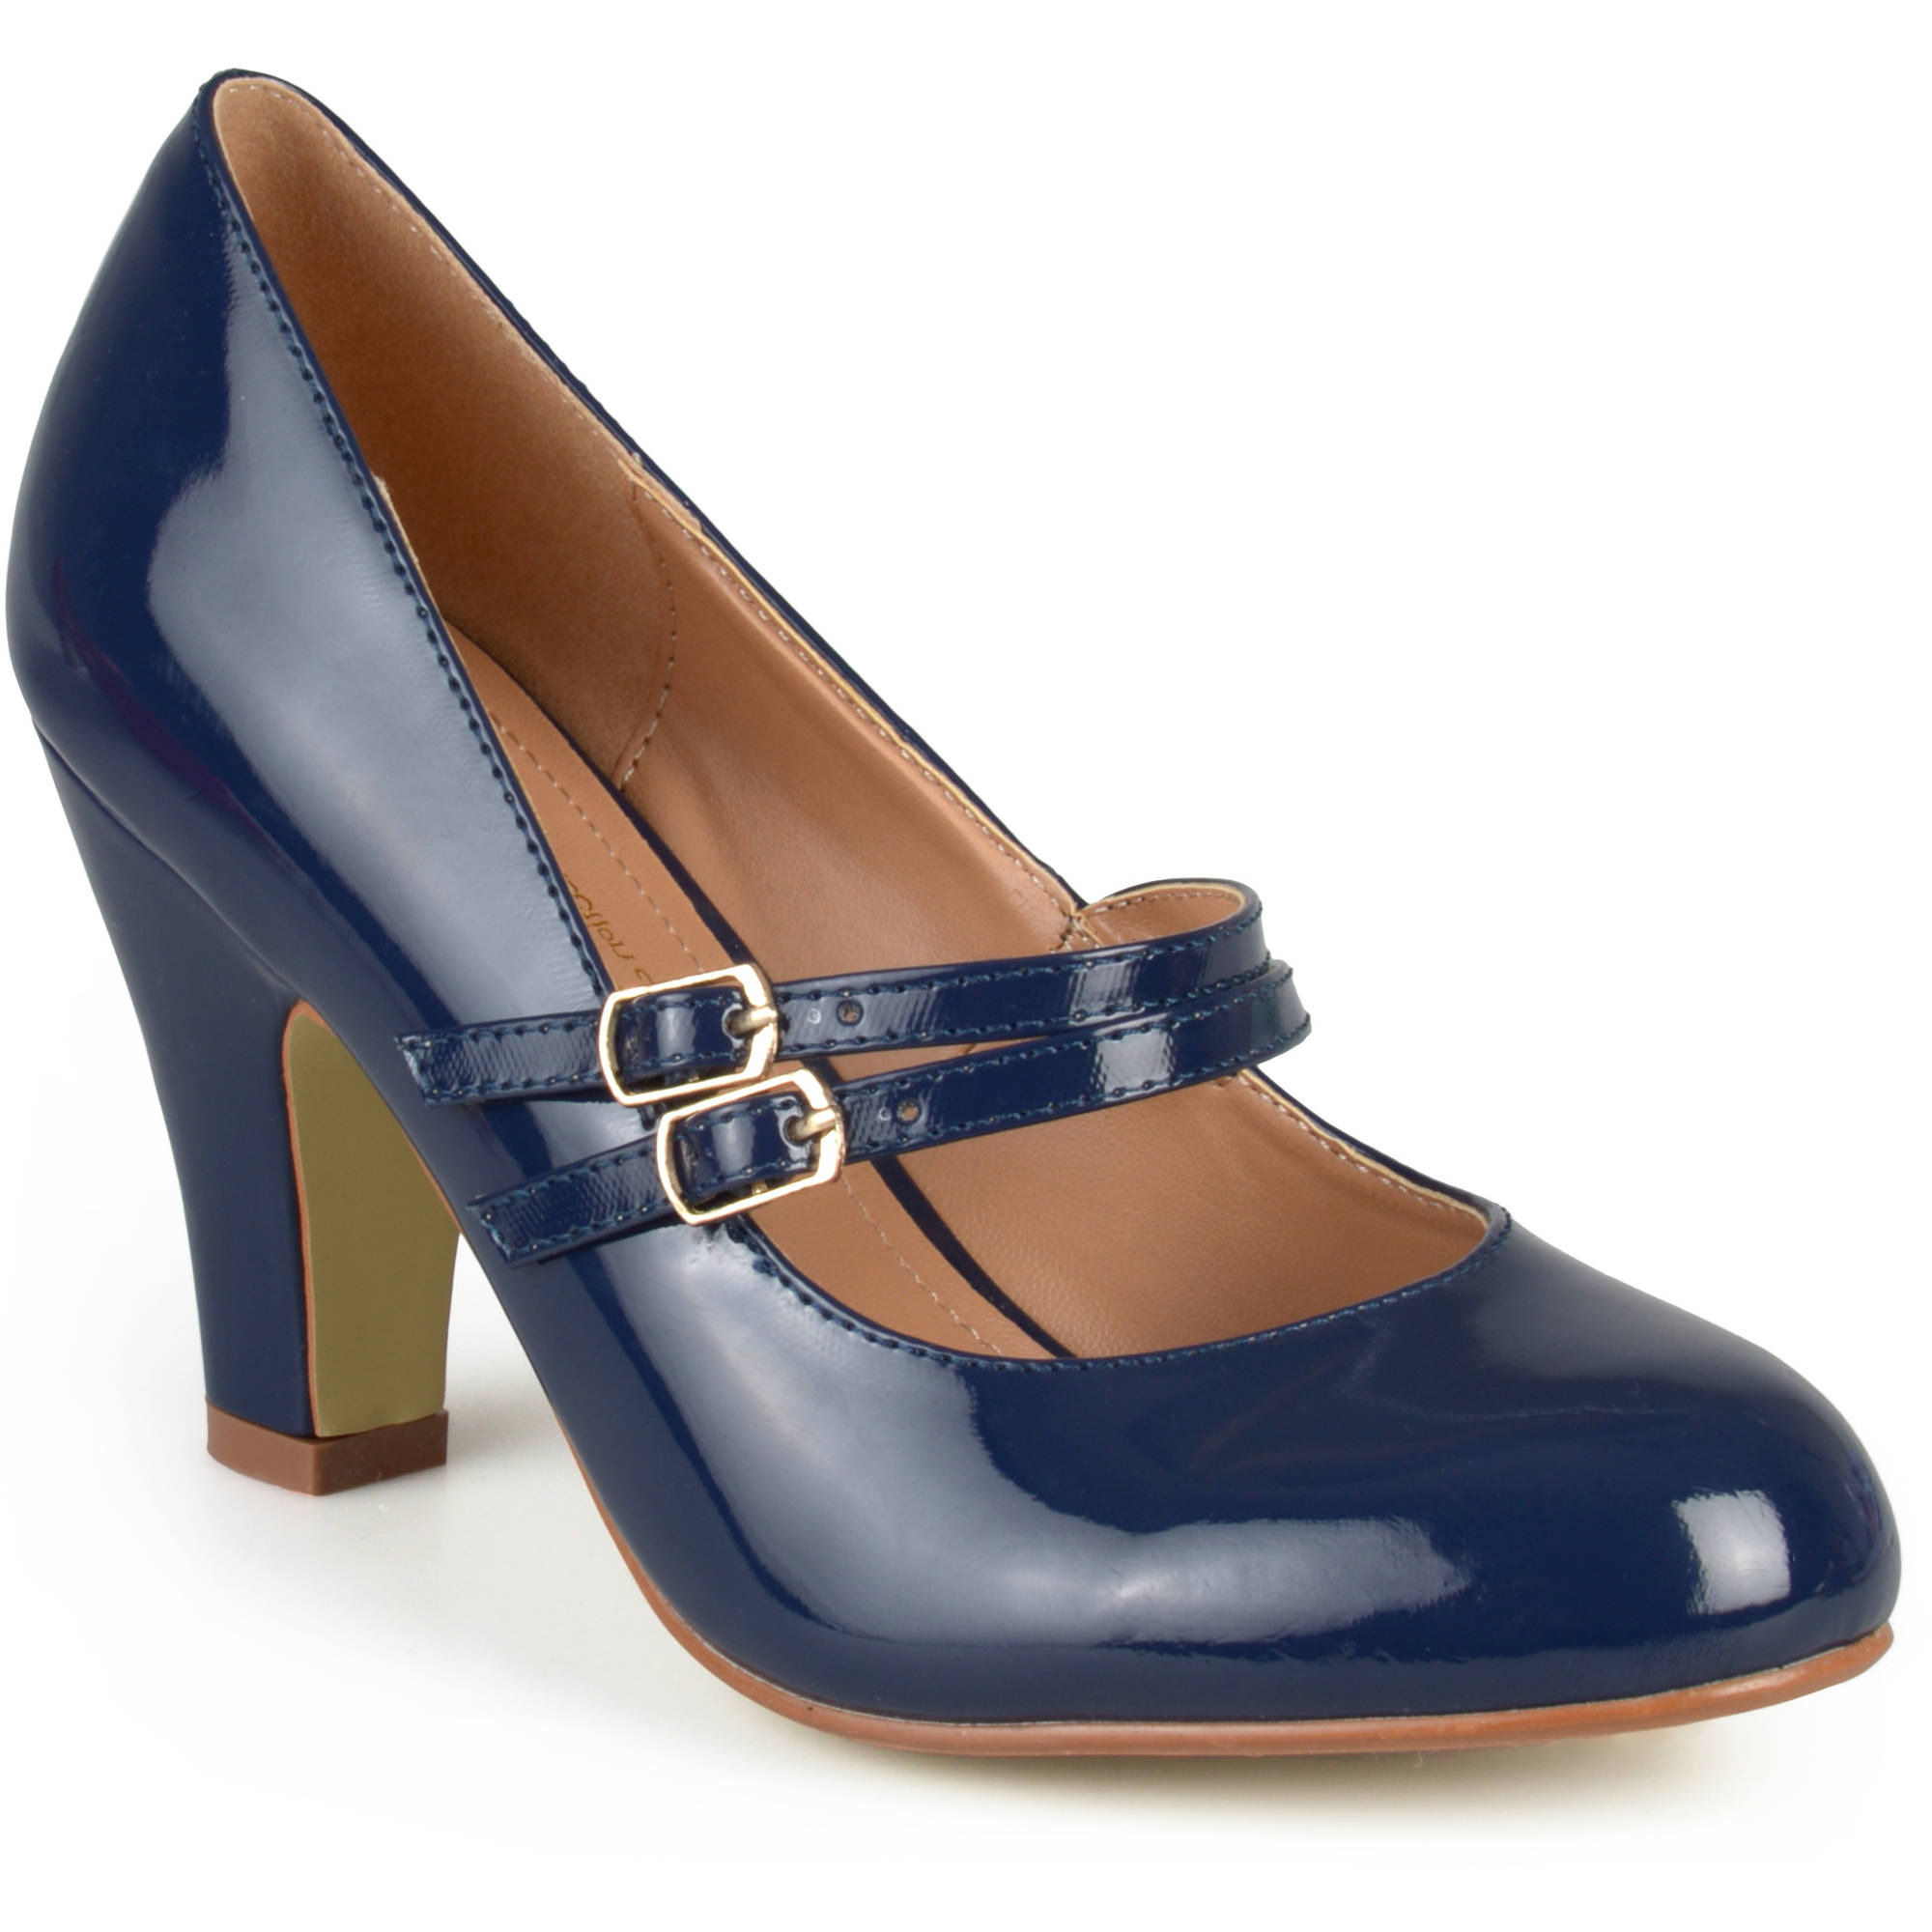 Brinley Co. Women's Mary Jane Patent Leather Pumps